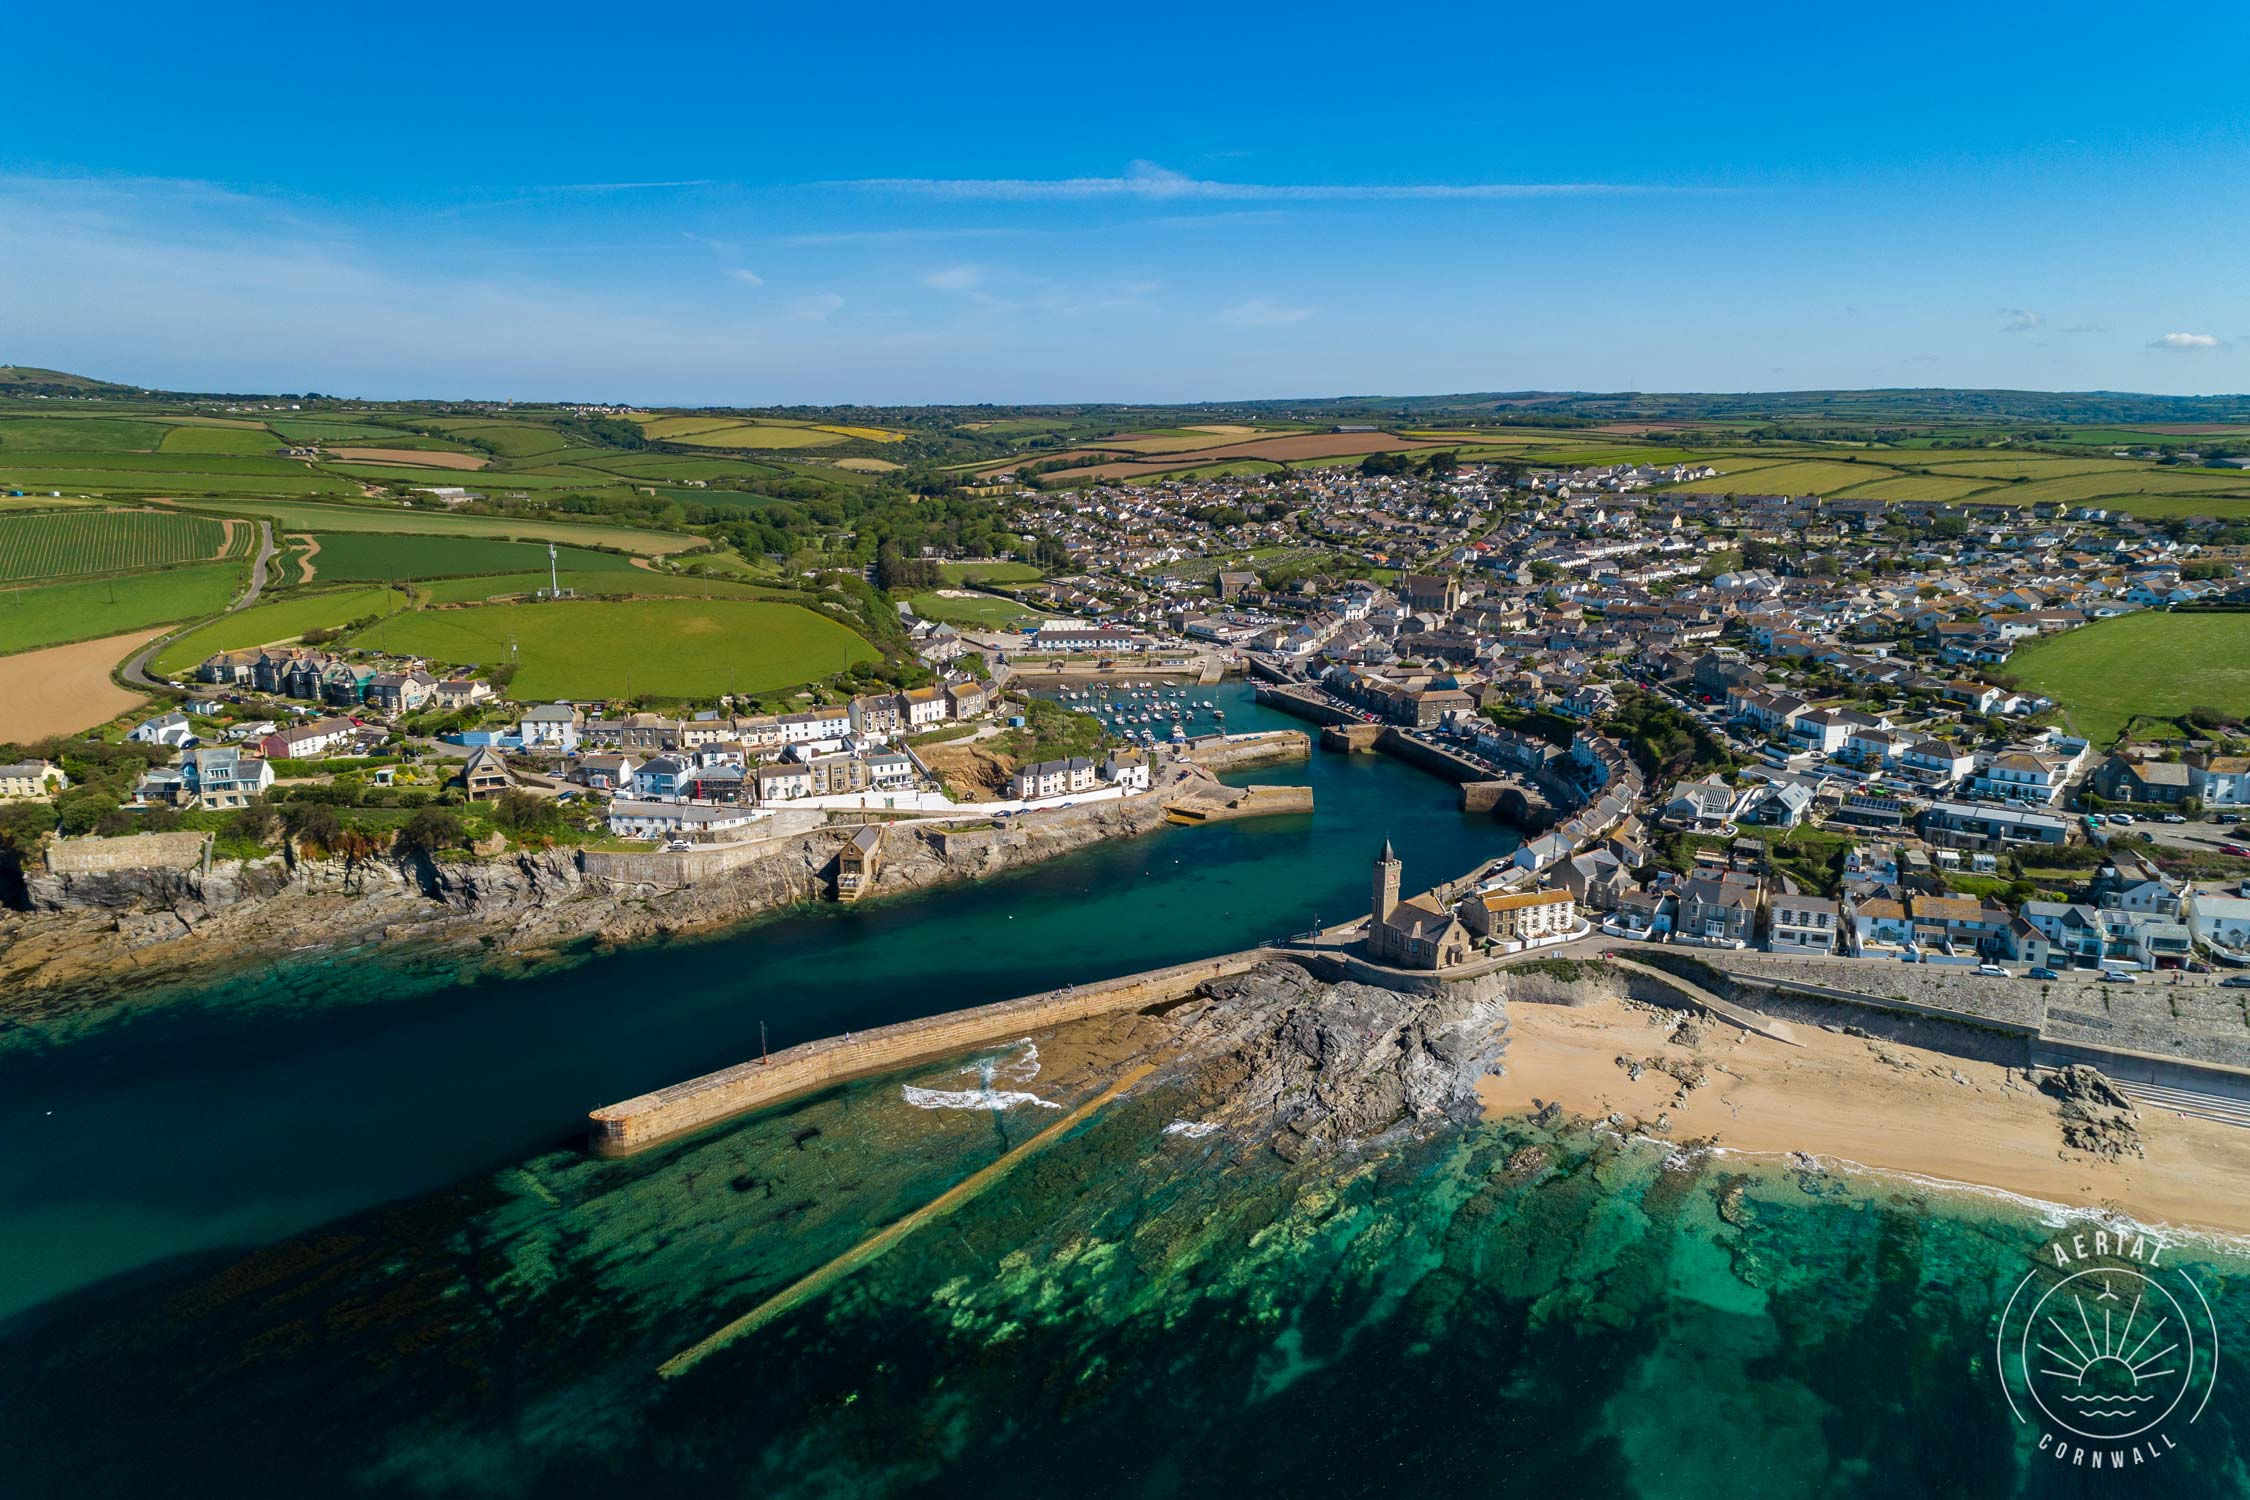 Location: Porthleven